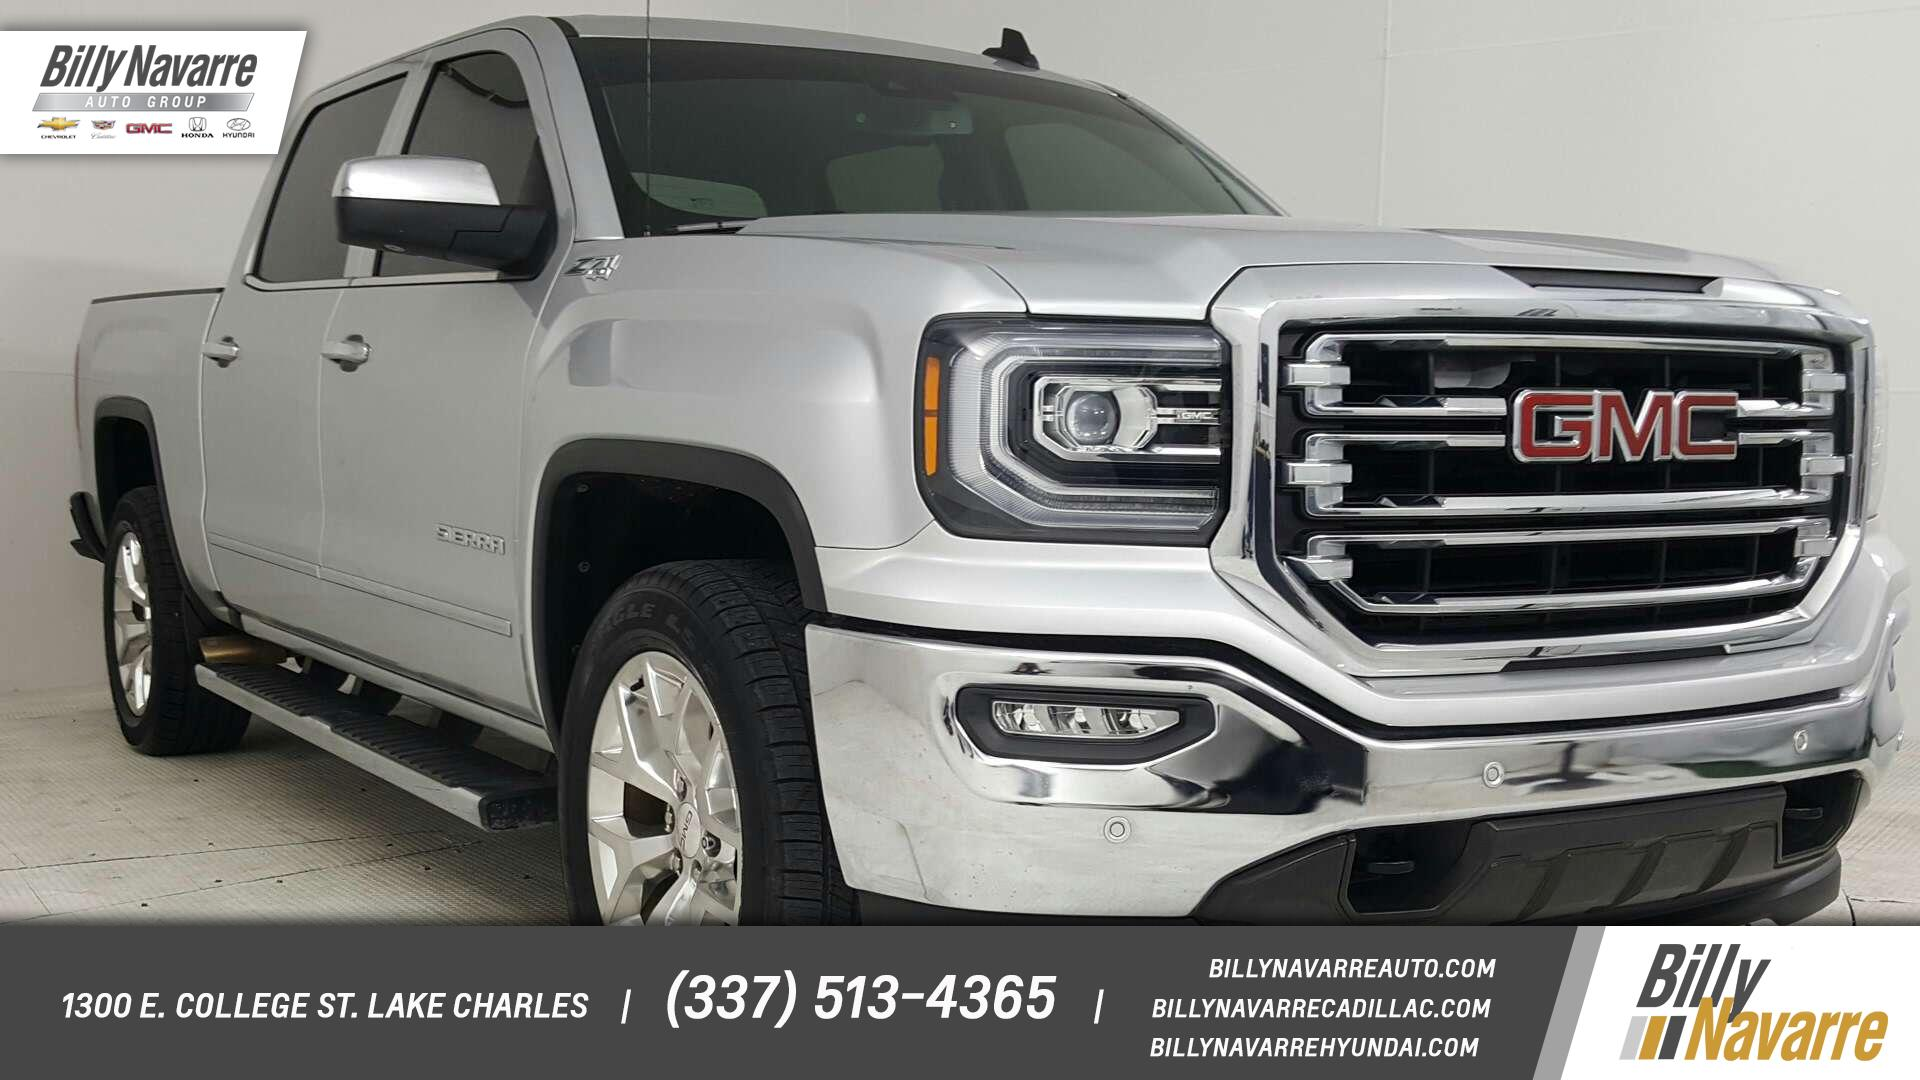 Lake Charles Chevrolet Dealership - Billy Navarre Chevrolet